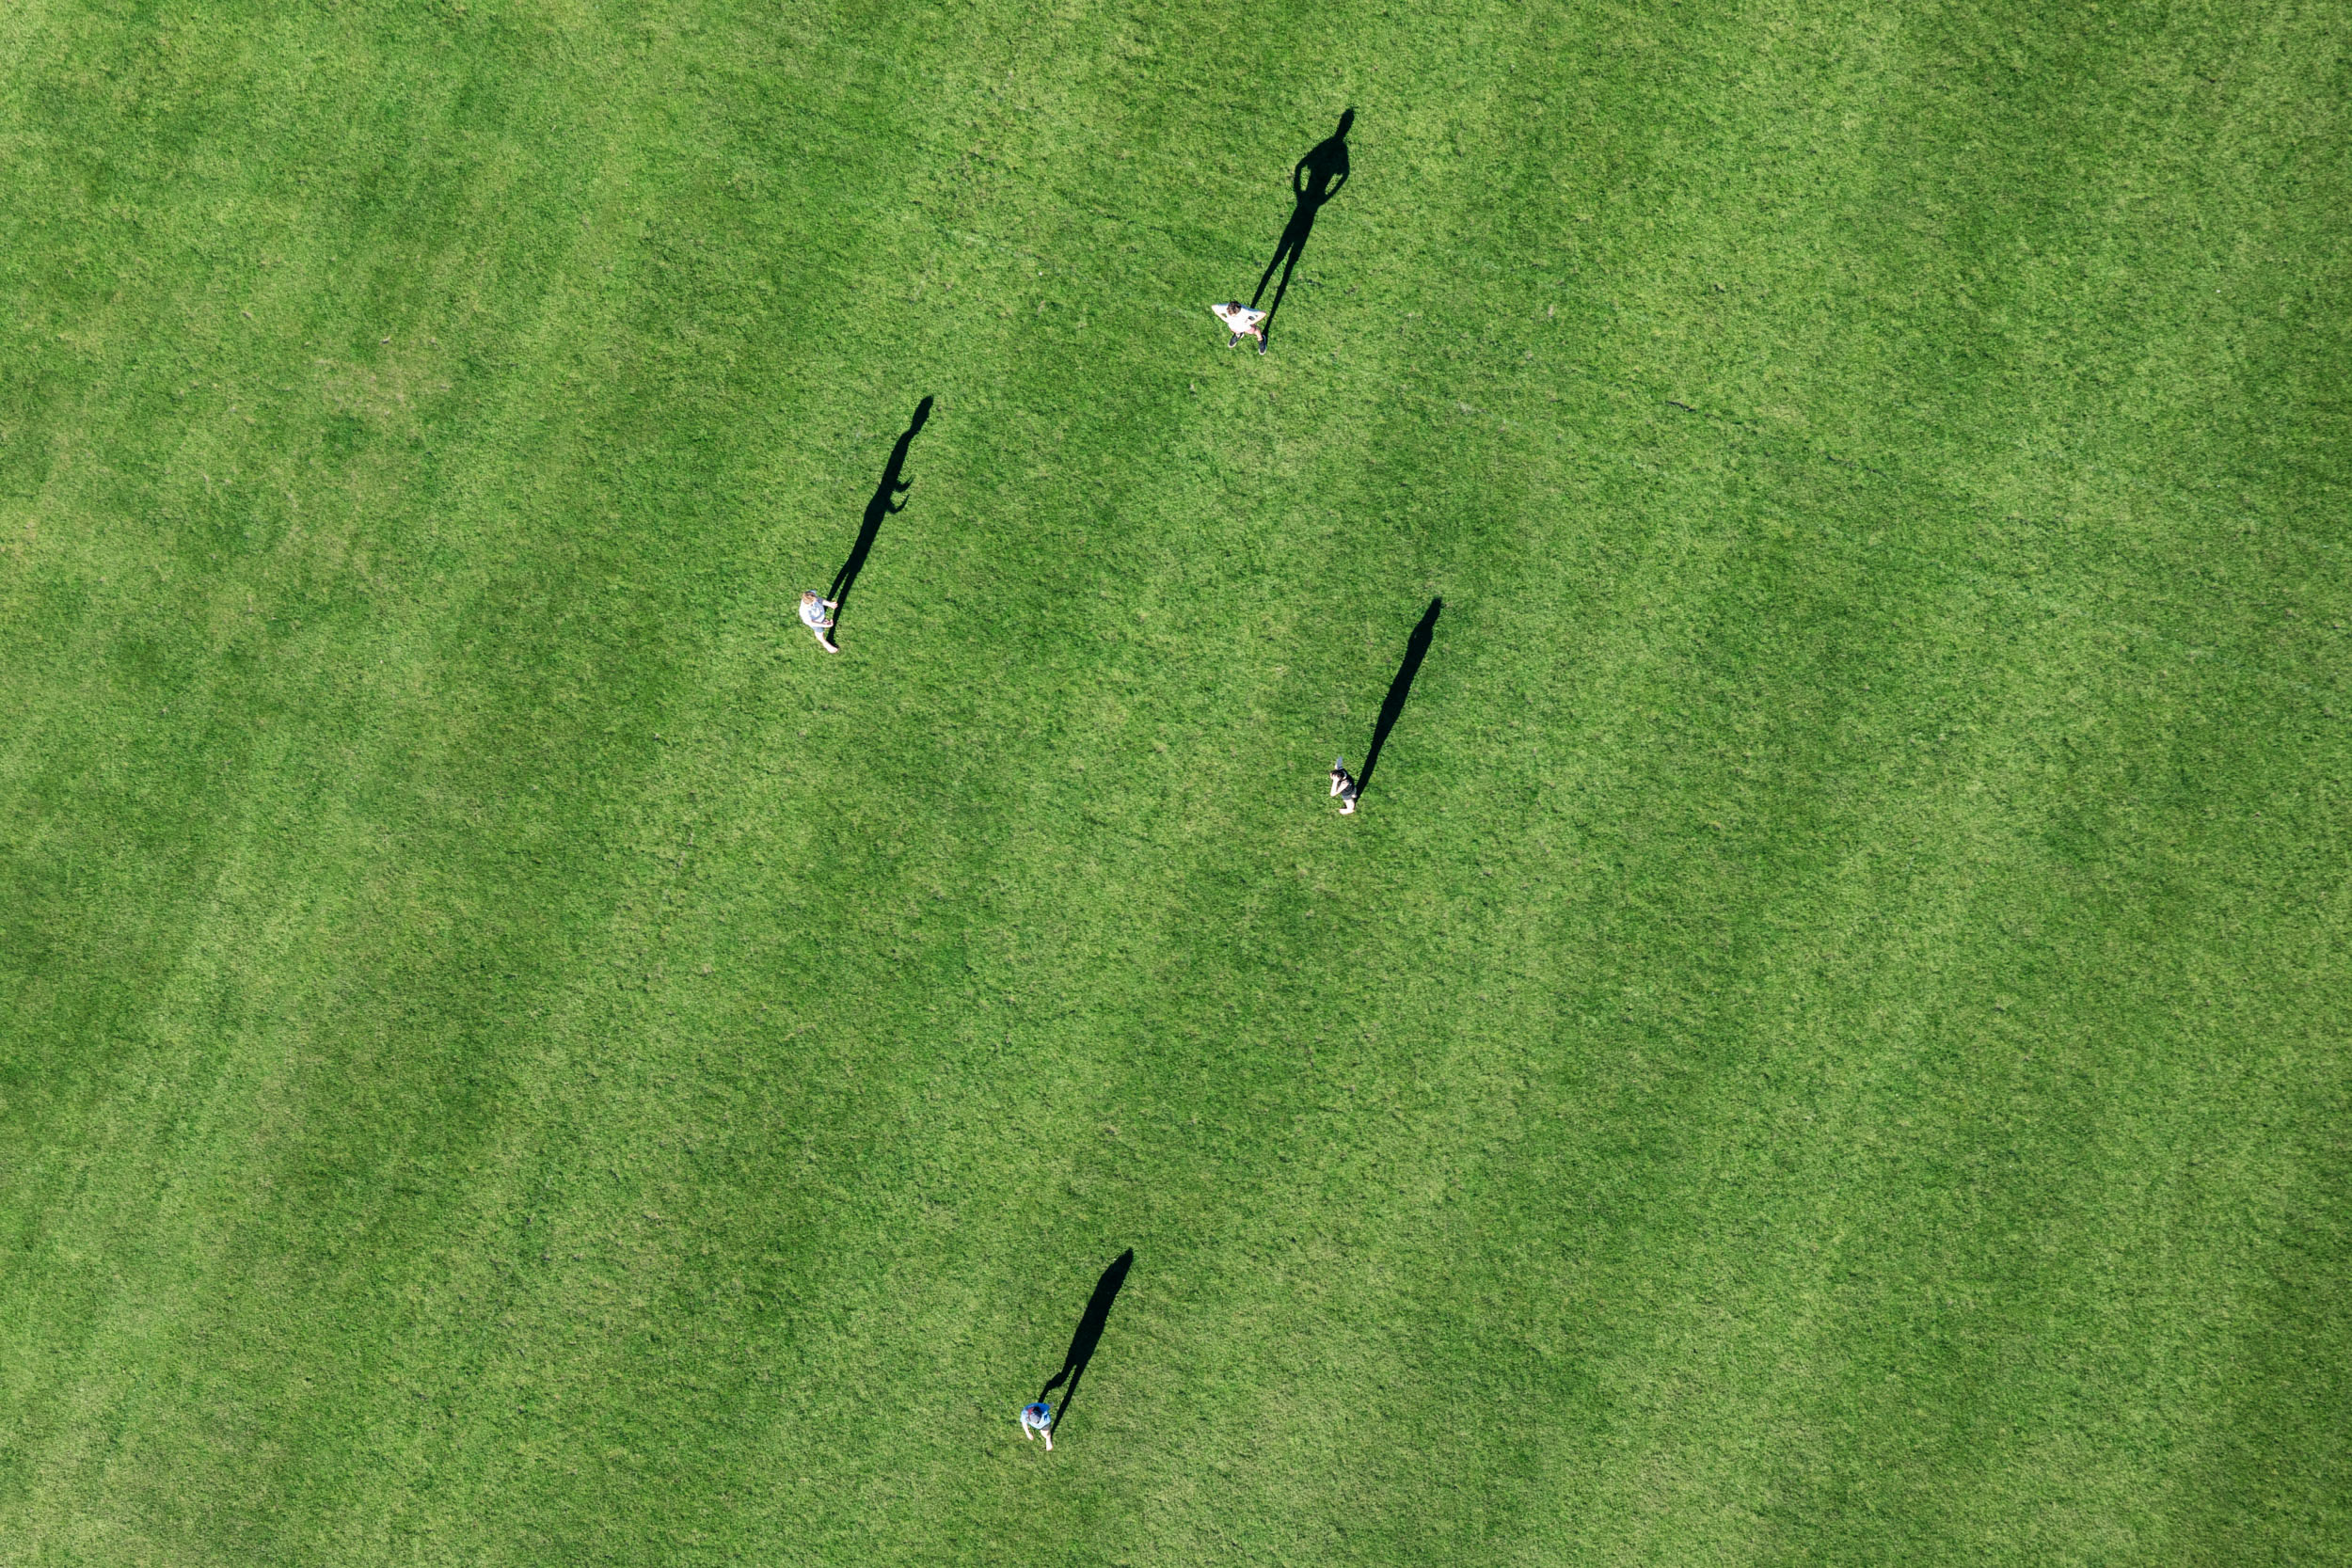 Soccer practice from above